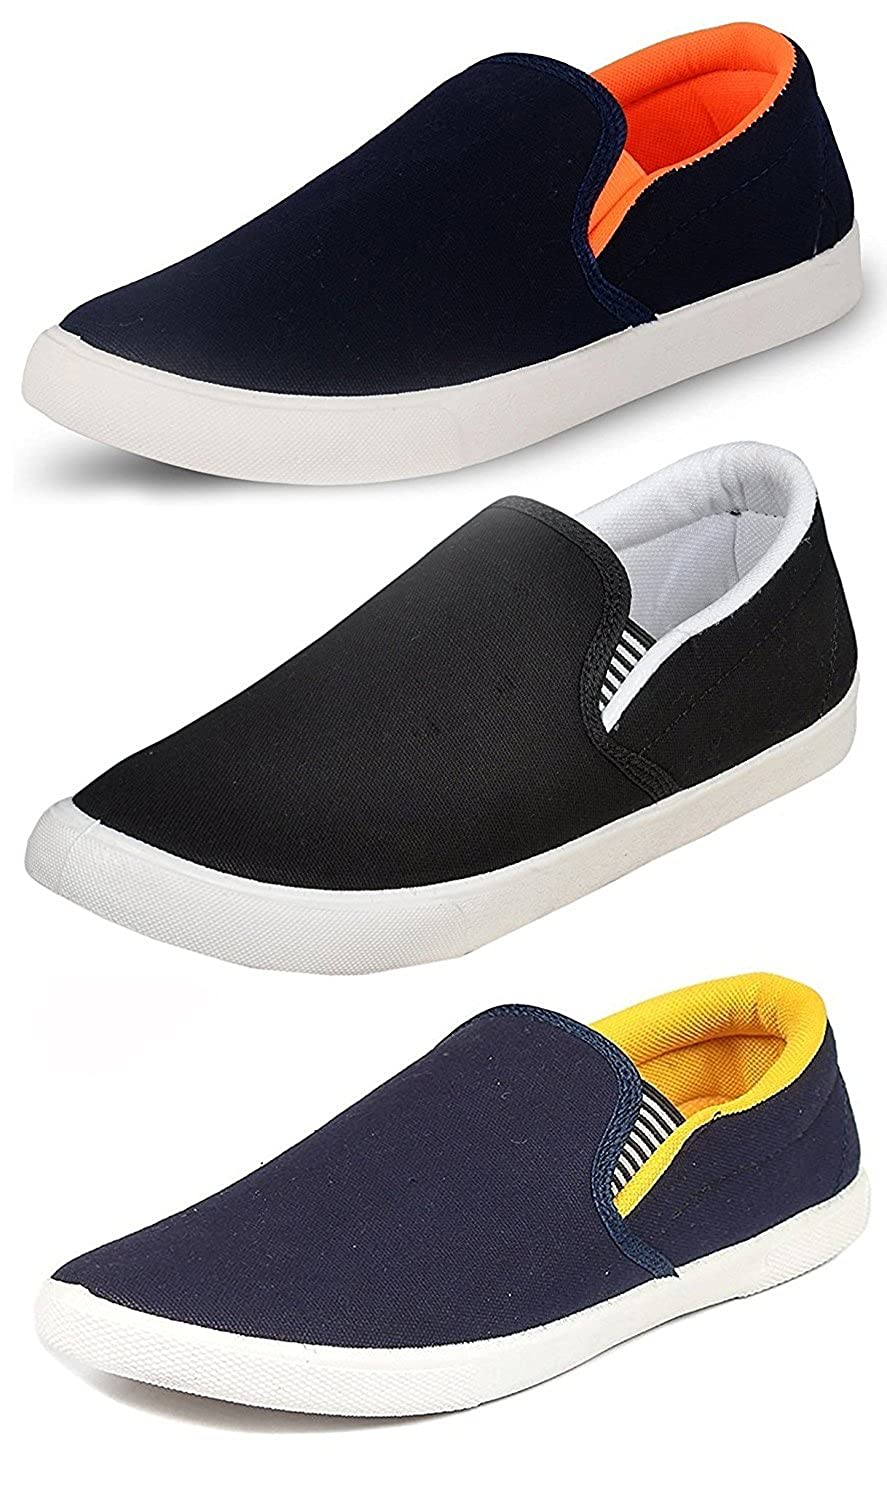 Ethics Men's Perfect Combo Pack of 3 Stylish Casual Loafer Shoes